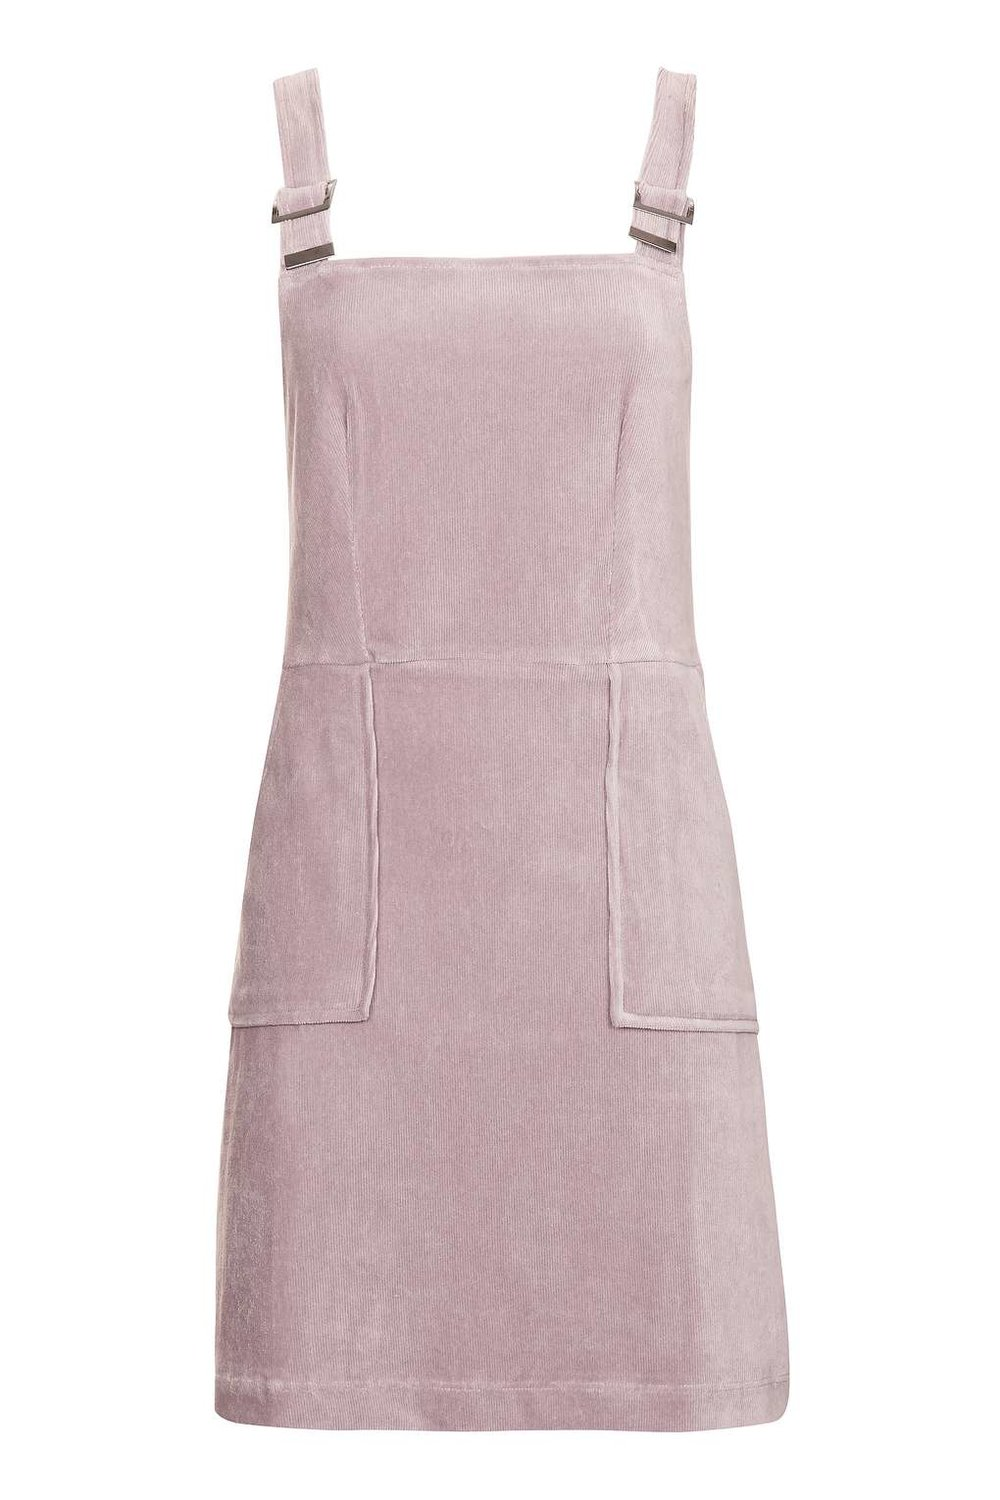 TOPSHOP CORD VELVET PINAFORE DRESS